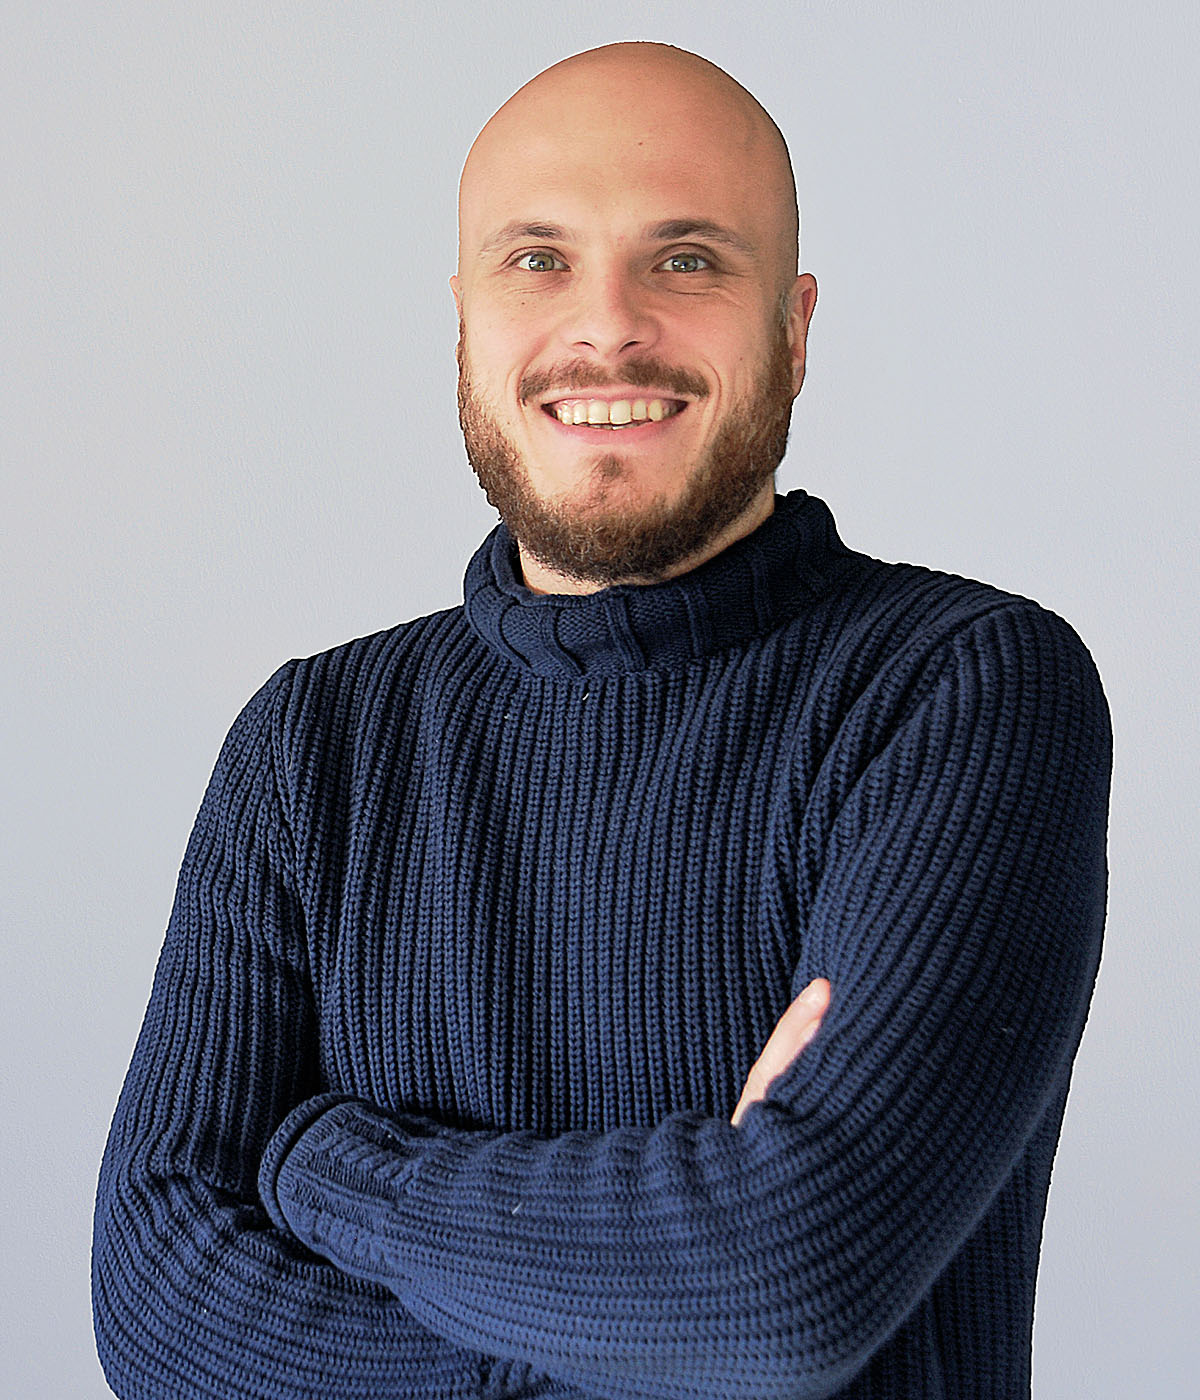 Luca Liparulo, COO & co-founder at Manet Mobile Solutions Srl